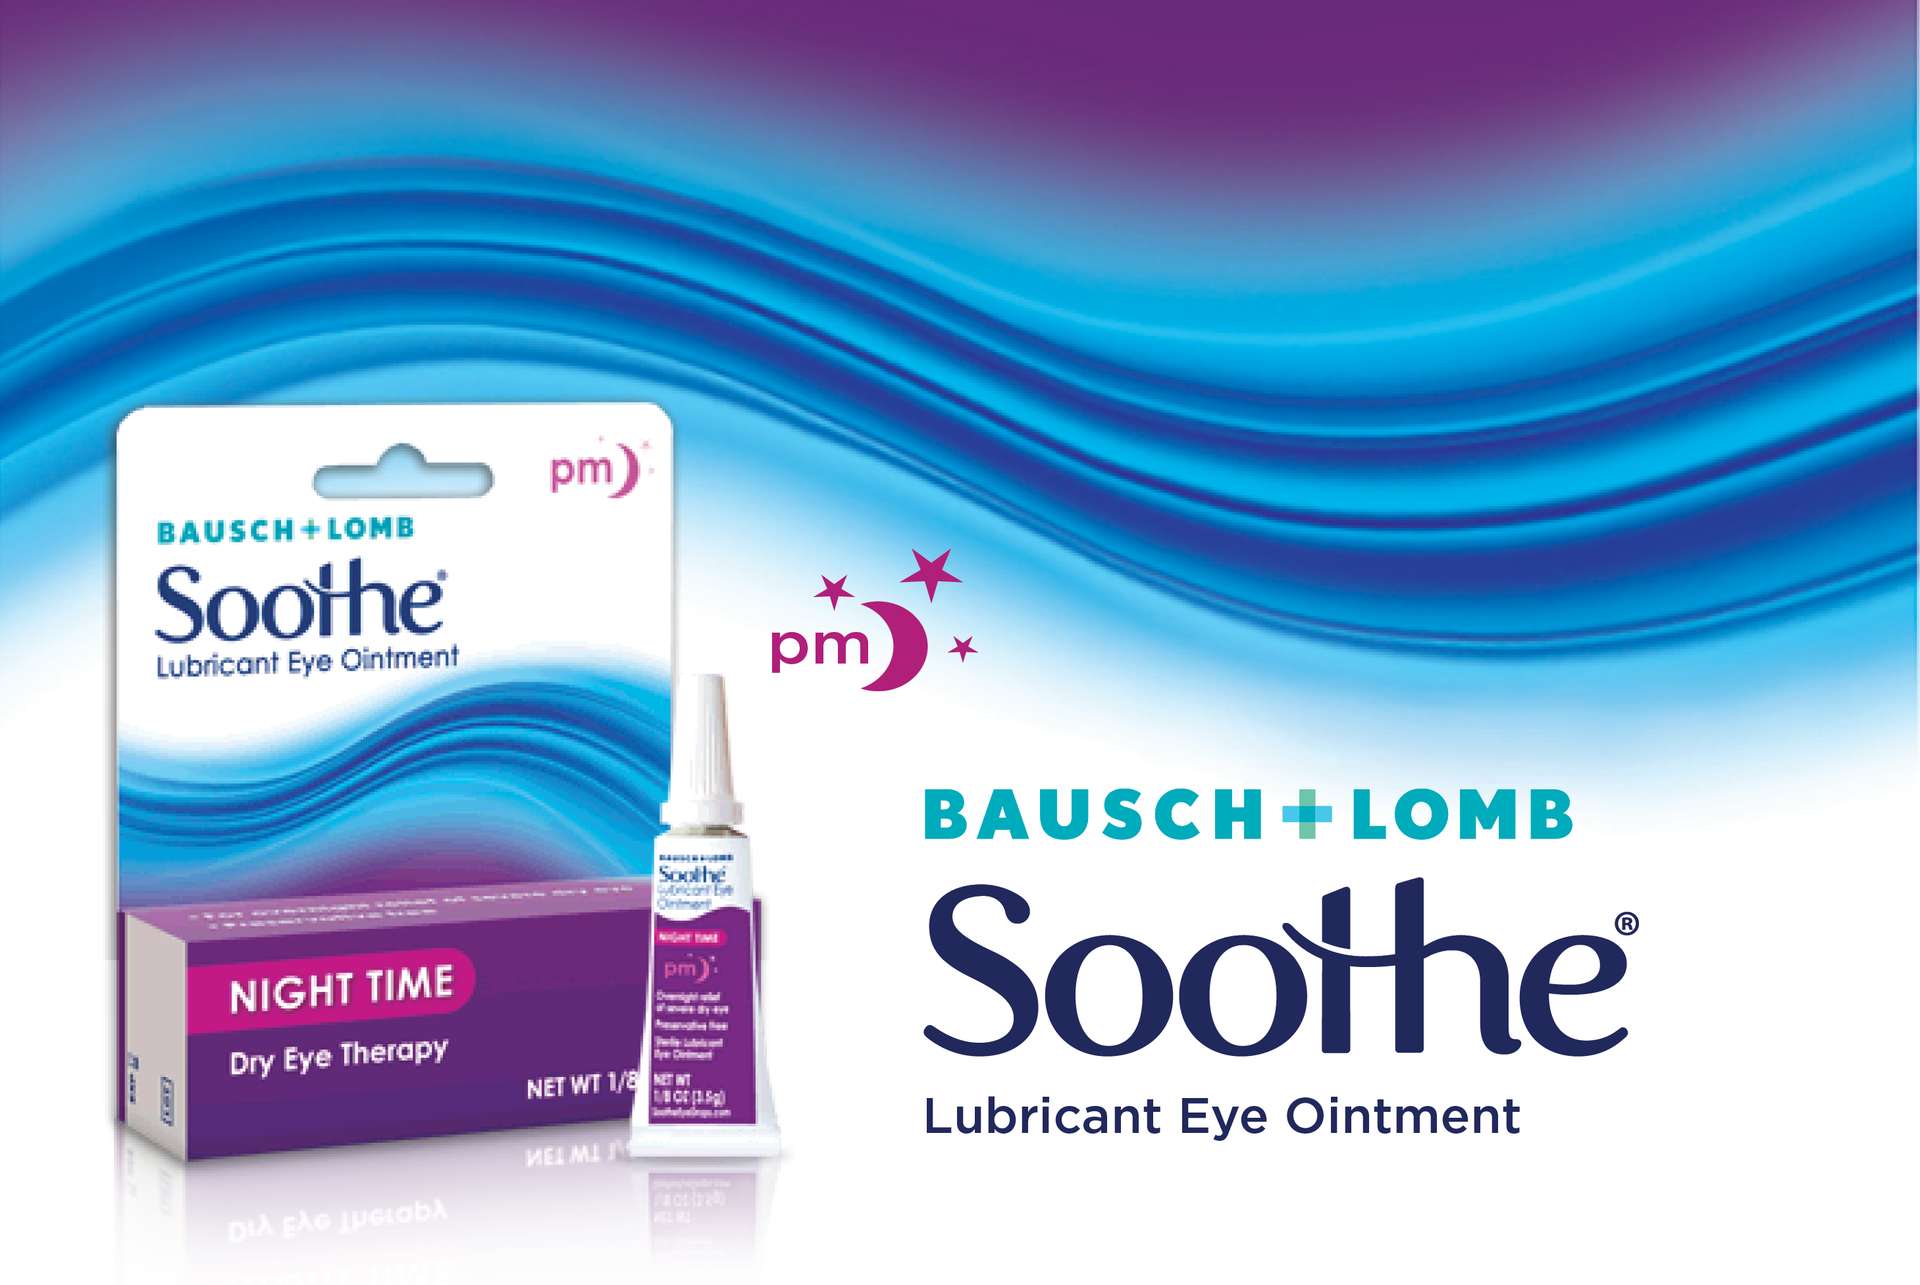 0a45d9b2993f Bausch + Lomb Soothe® Night Time Lubricant Eye Ointment provides overnight  relief of dry eye. The formula contains two lubricants to relieve dryness  of the ...